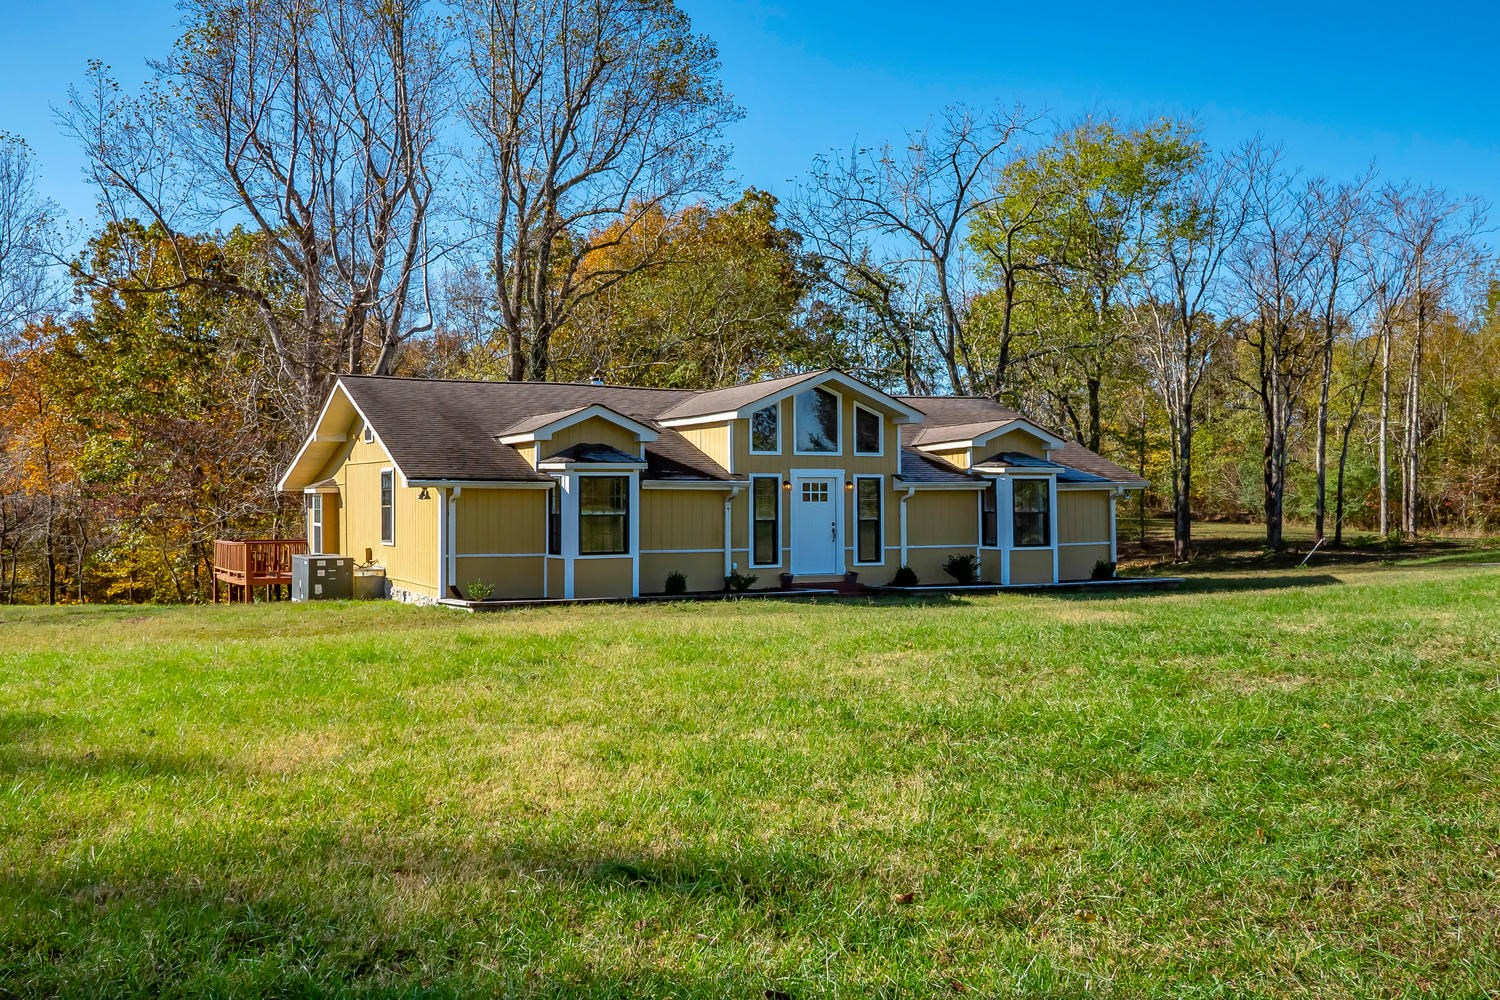 Middle Tennessee Country Home on 21 Acres for sale!